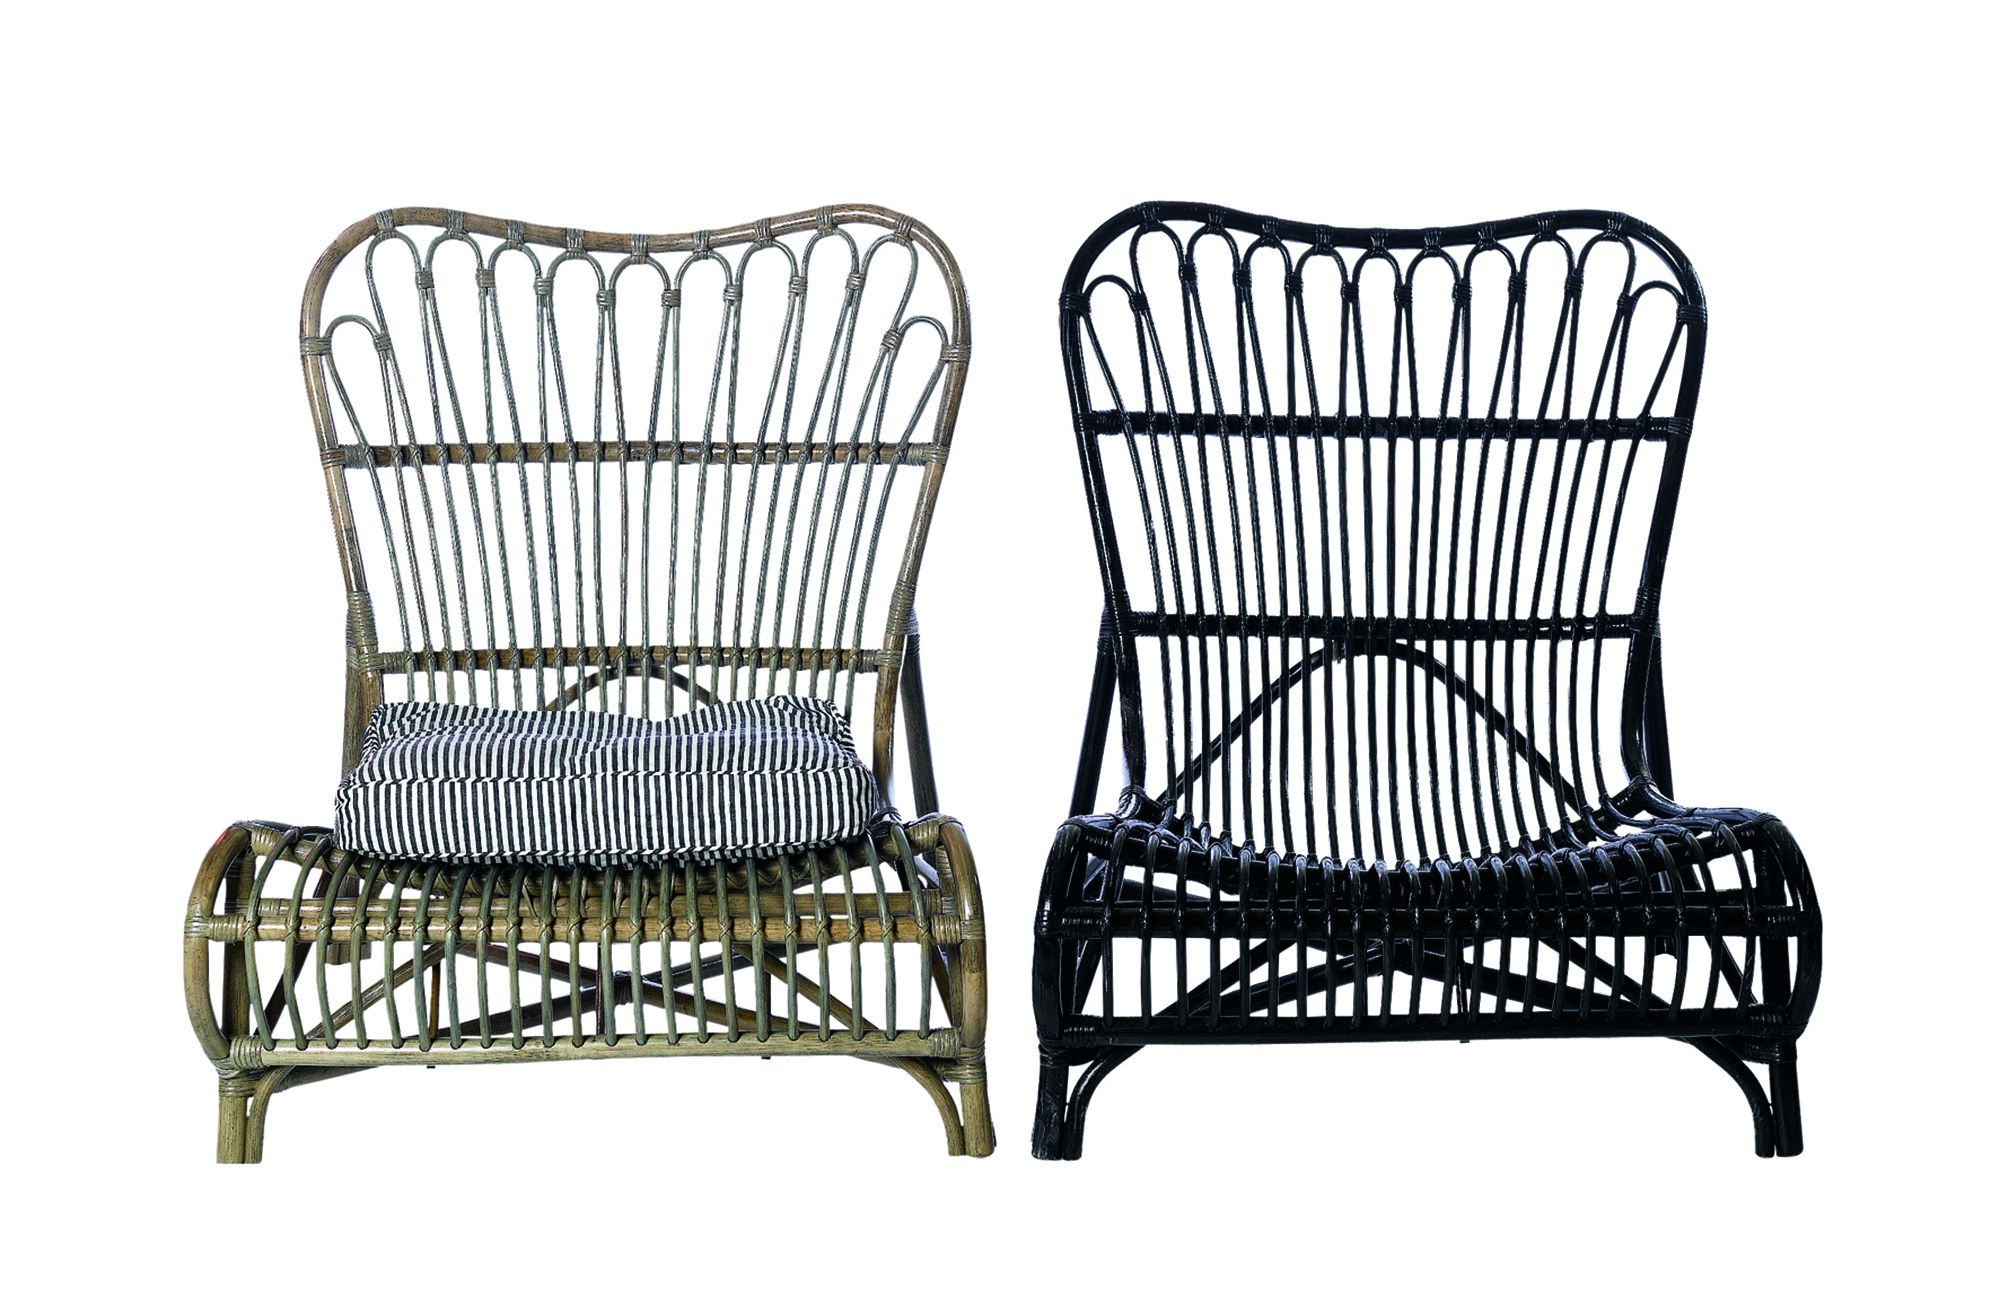 Lekkere Lounge Stoel.Colone Lounge Chair Eclectic Chairs Chair Wicker Furniture